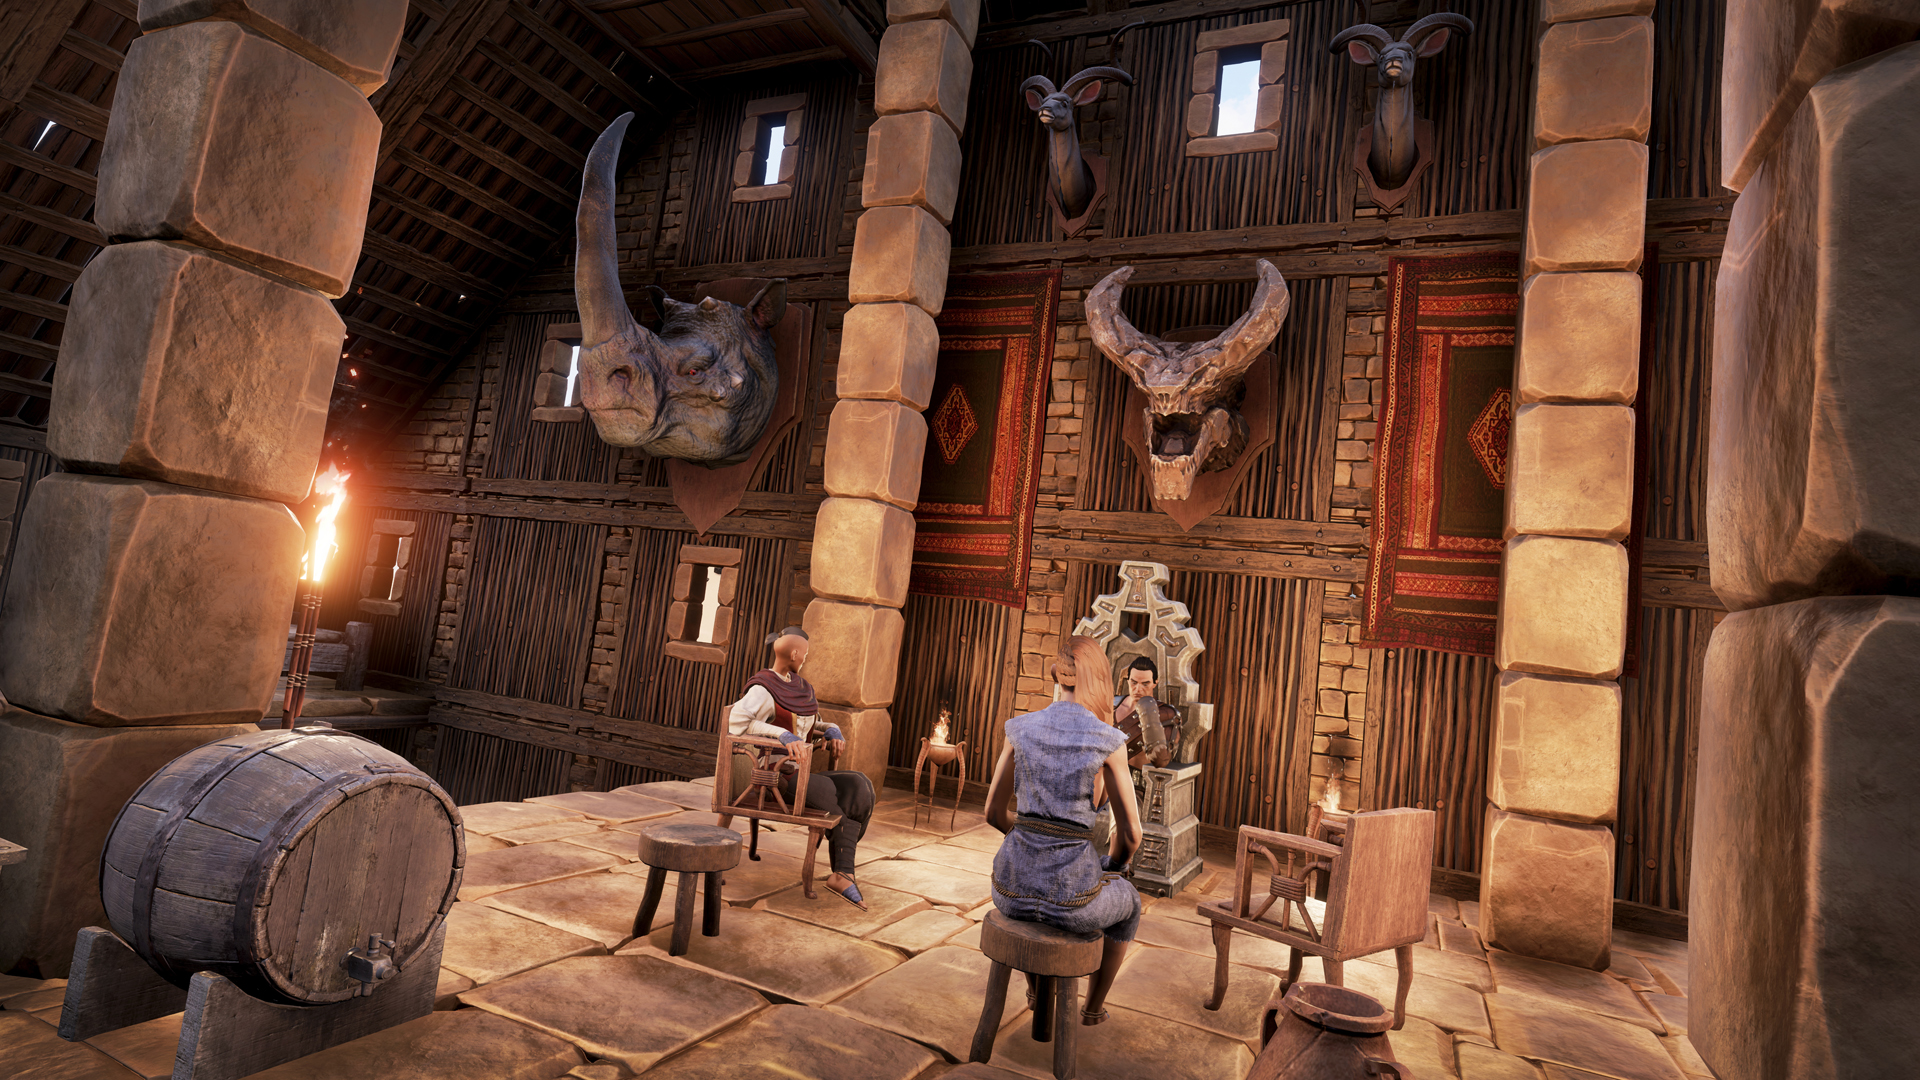 Conan exiles beginners guide tips and strategies for new conan exiles beginners guide tips and strategies for new players player forumfinder Images